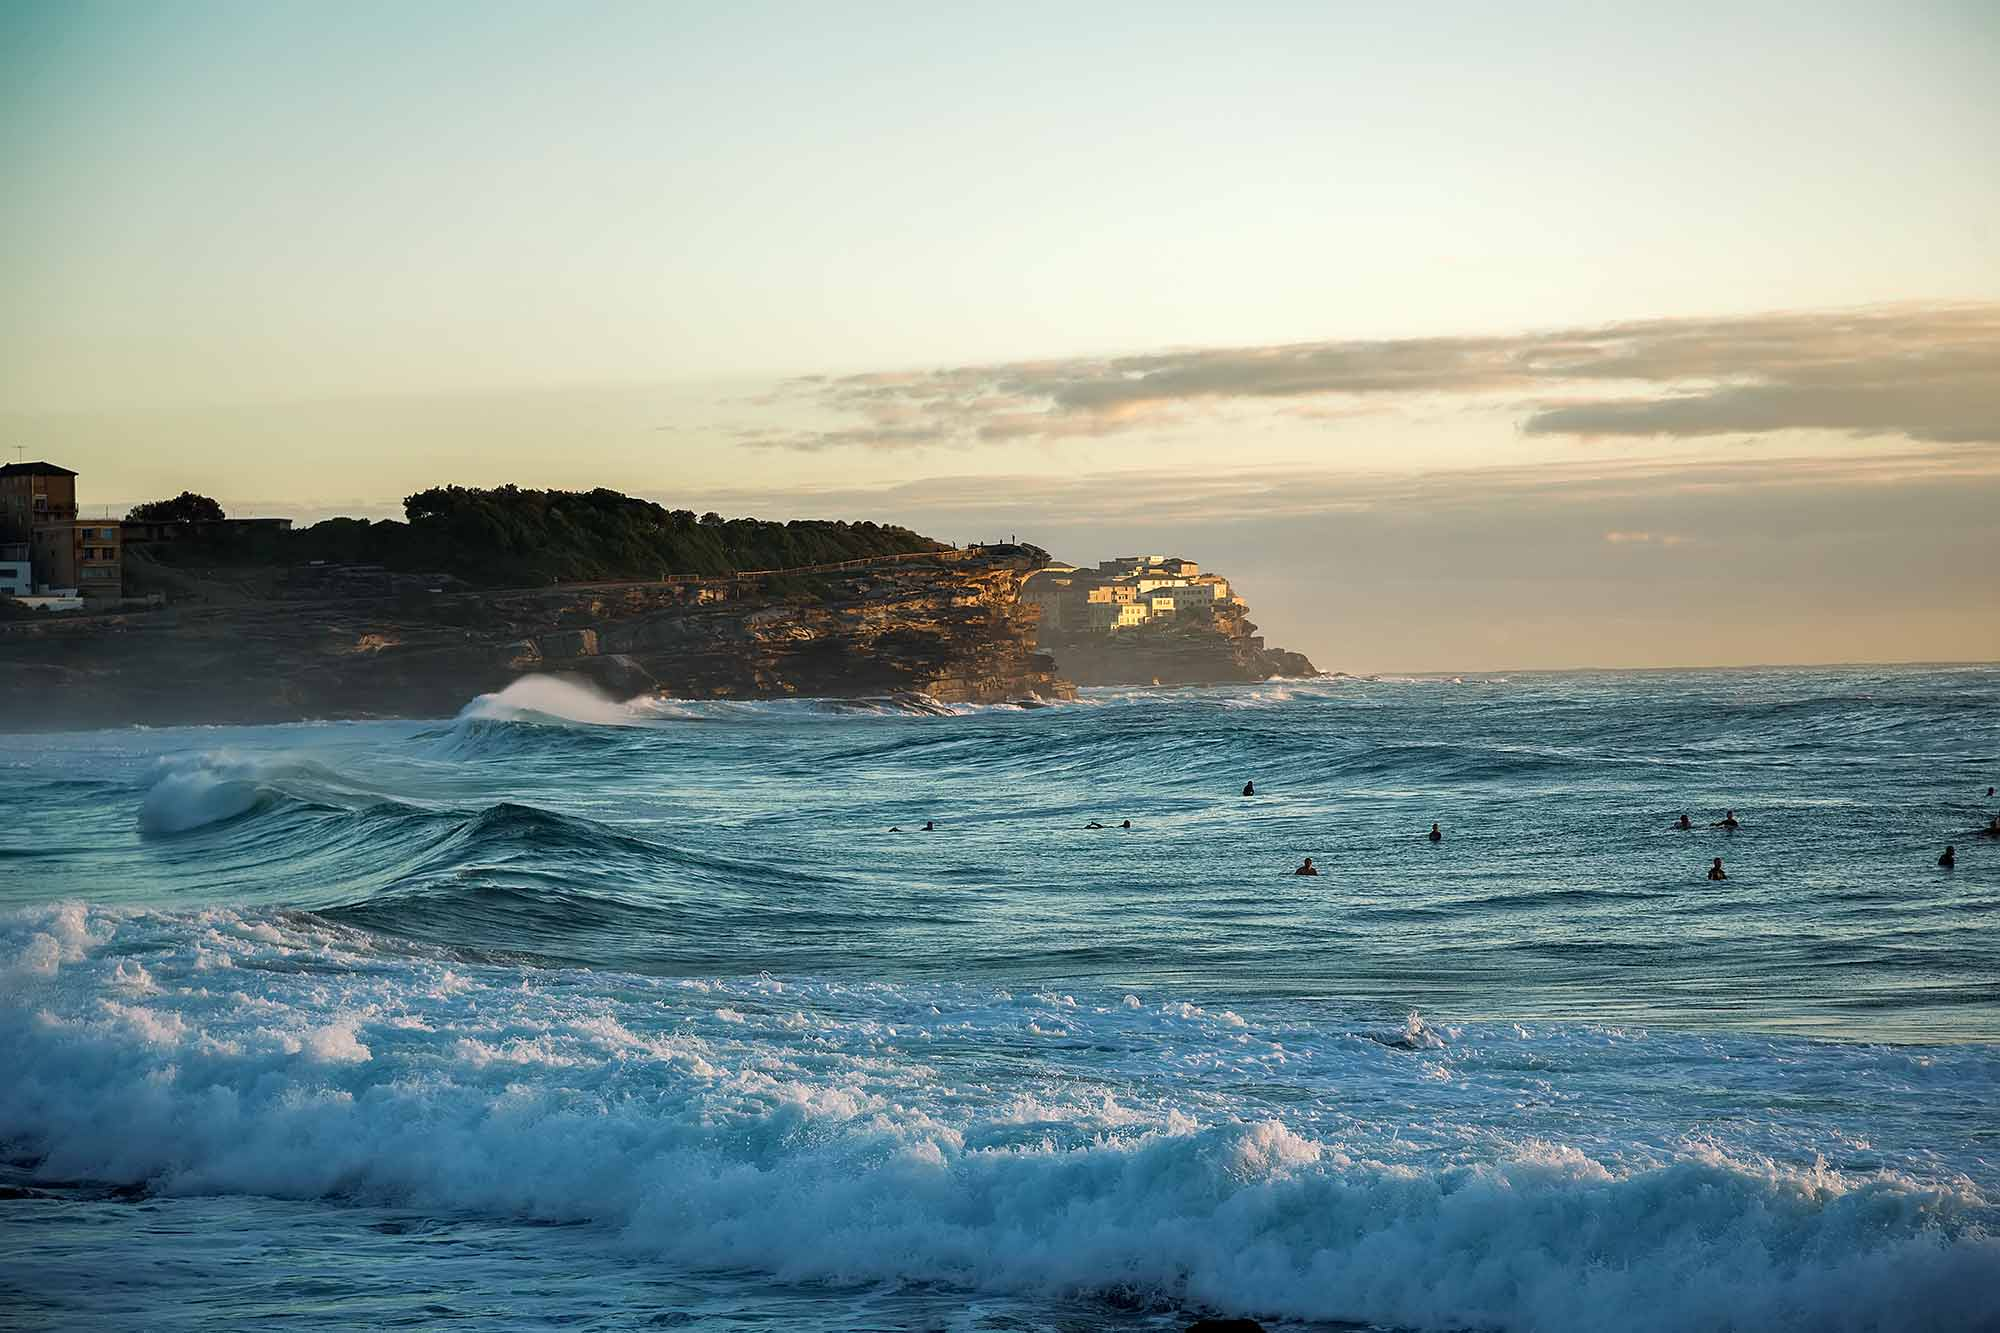 Sydney Coastal Walk: Surfers on Bronte Beach. © Ulli Maier & Nisa Maier